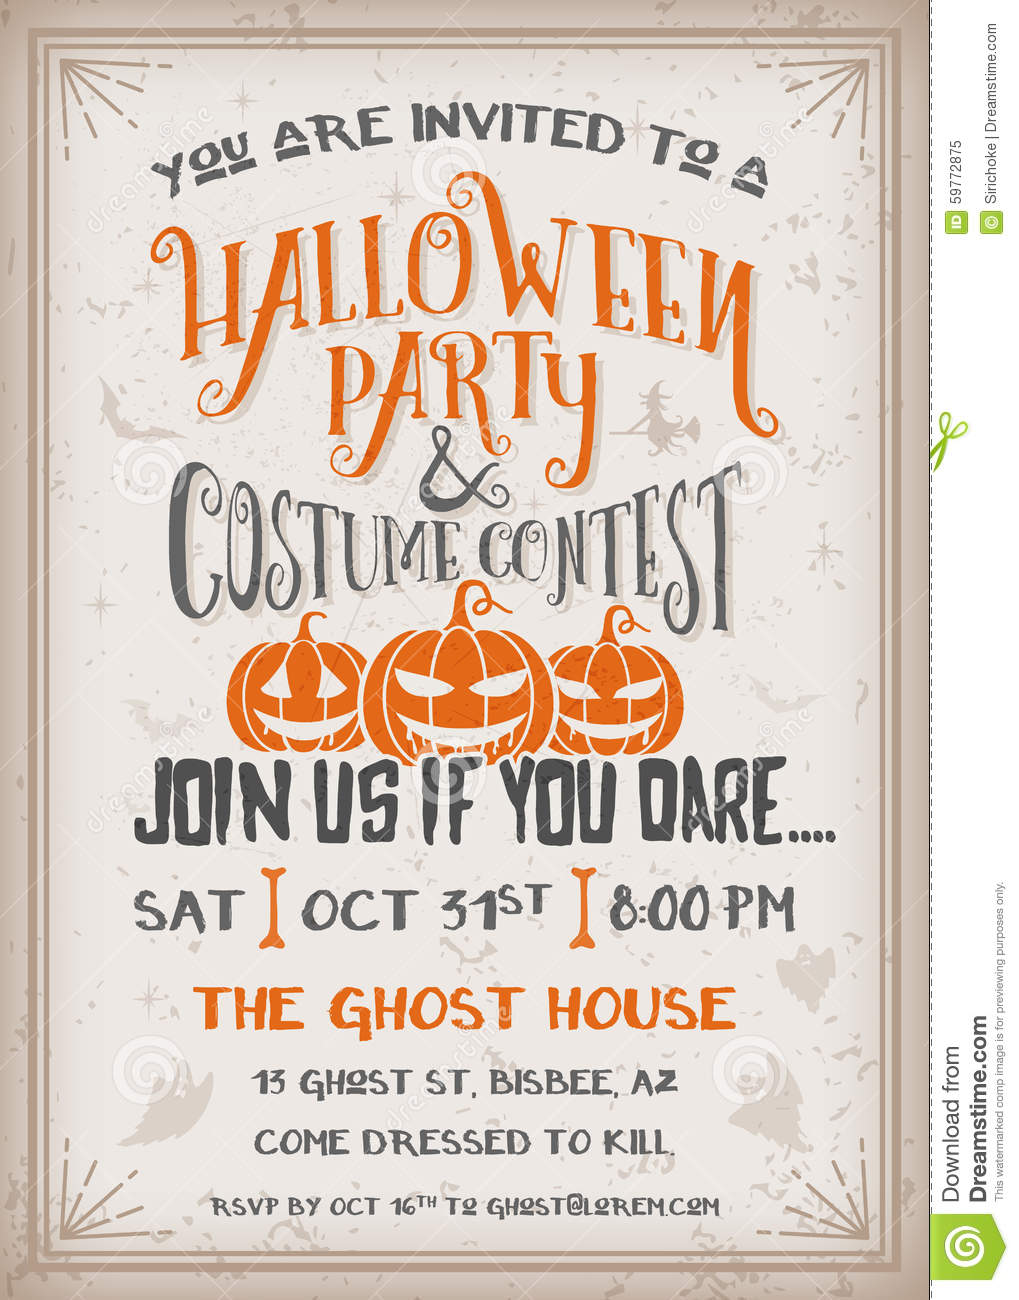 Halloween Party And Costume Contest Invitation Stock Vector ...